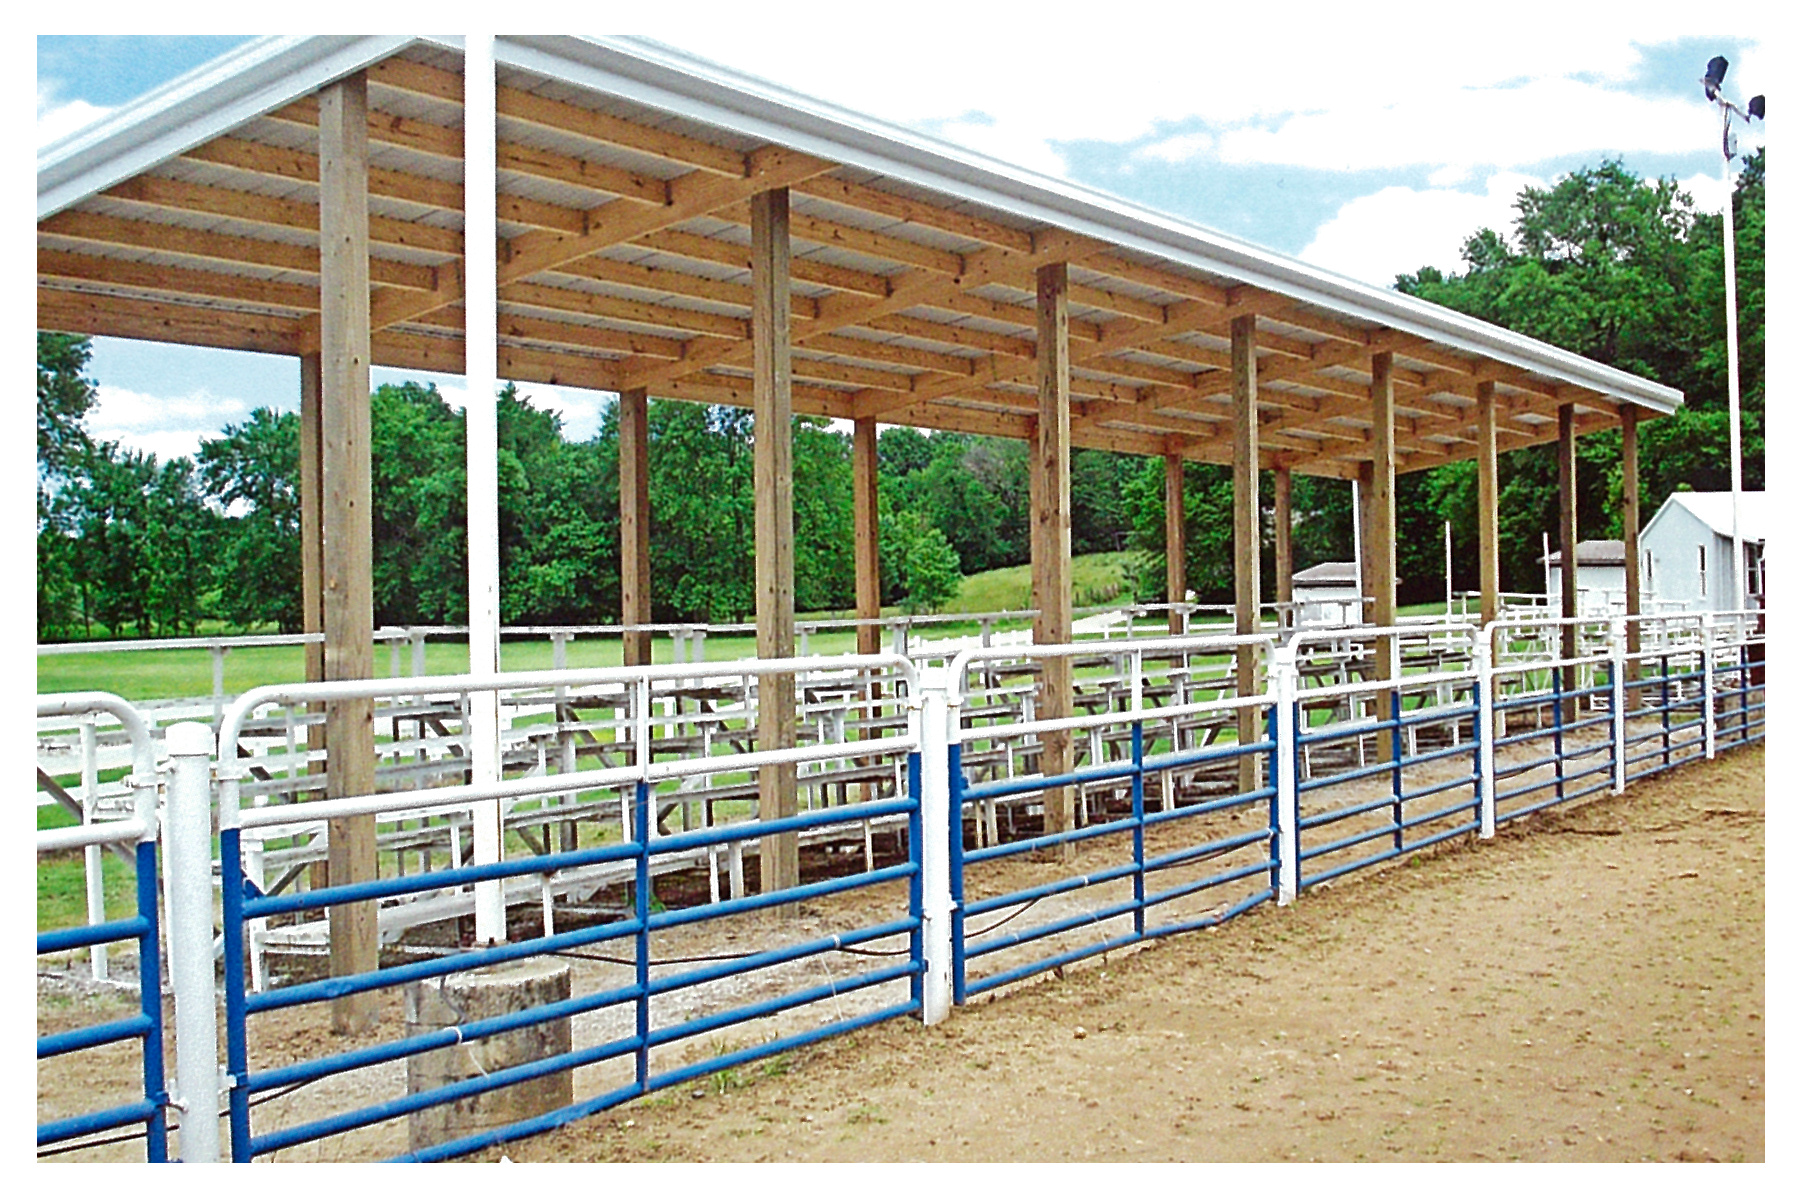 IL Boots and Saddle Club Facility Improvement 2016 - New Bleacher Cover May 2015.png